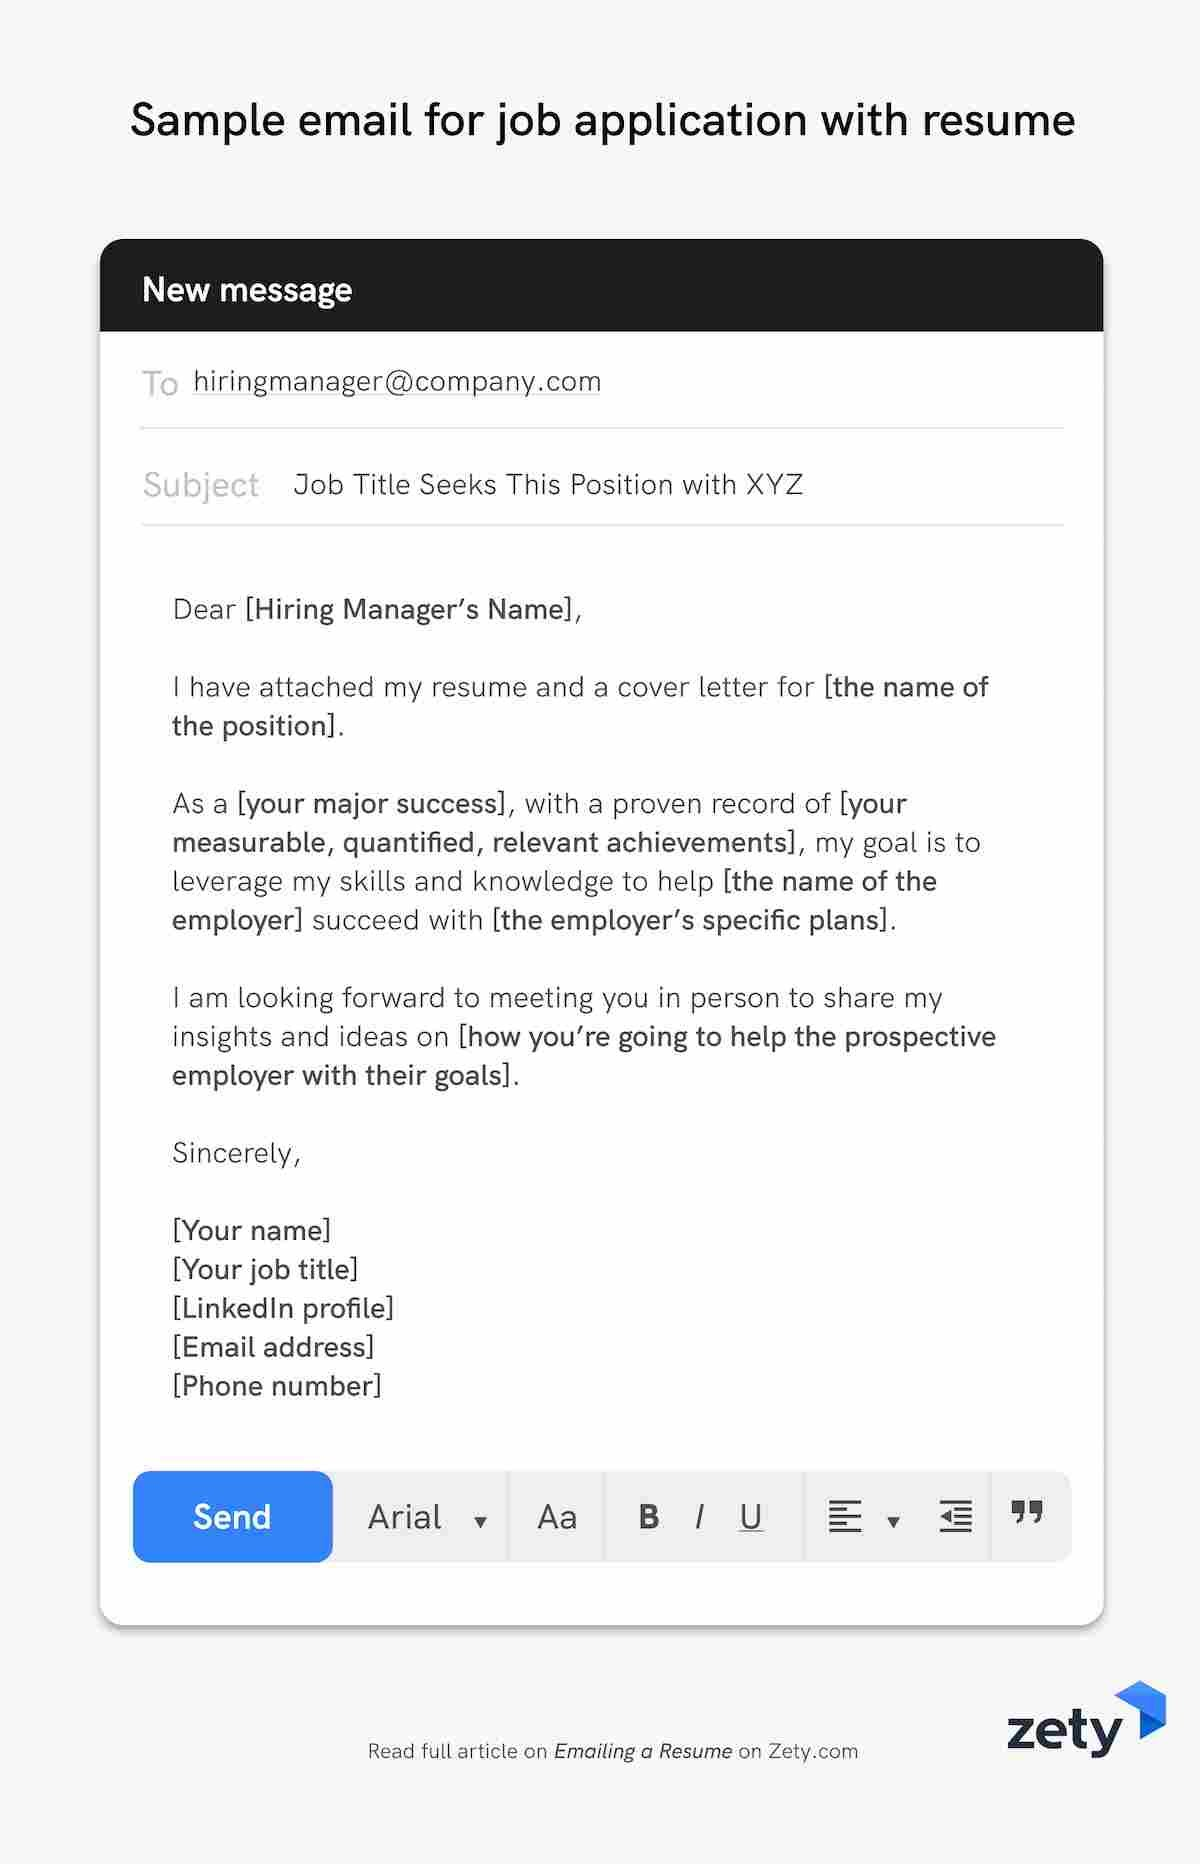 emailing resume job application email samples resumes for employers sample with builder Resume Online Resumes For Employers